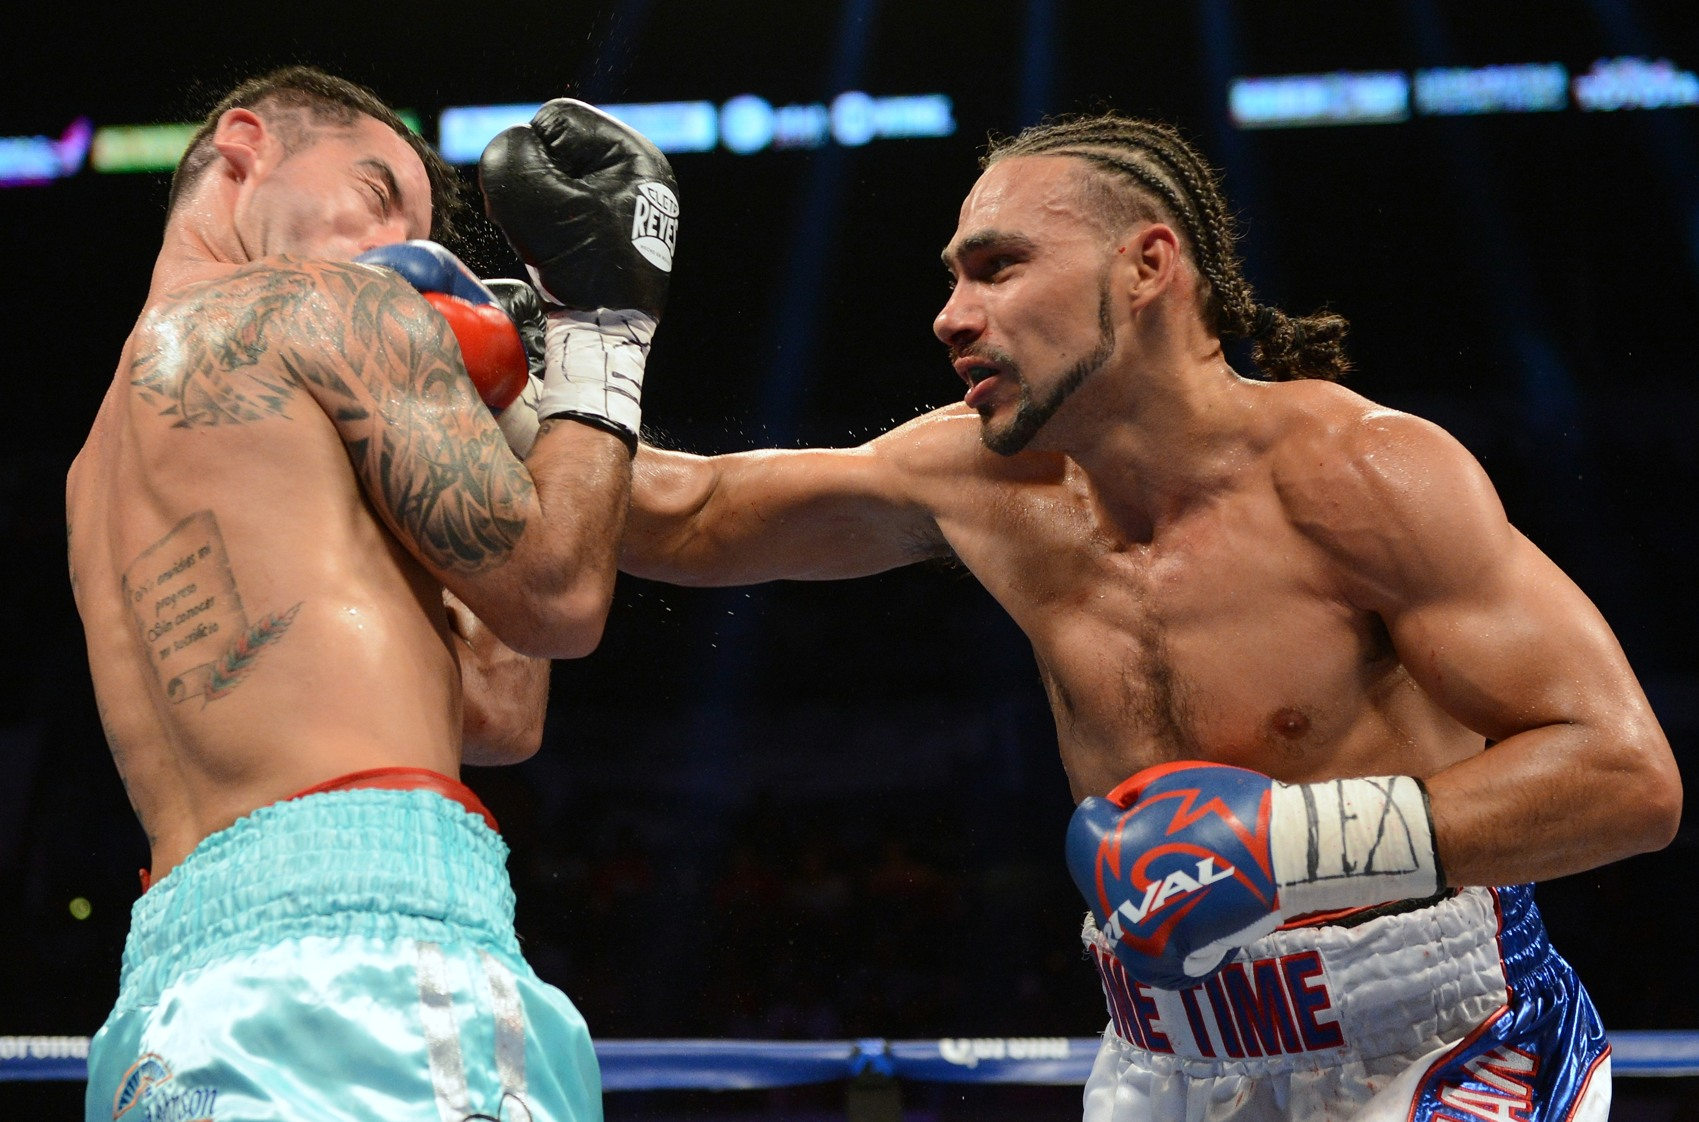 file_180139_0_thurman_vs_chaves_5_20130727_1812739720